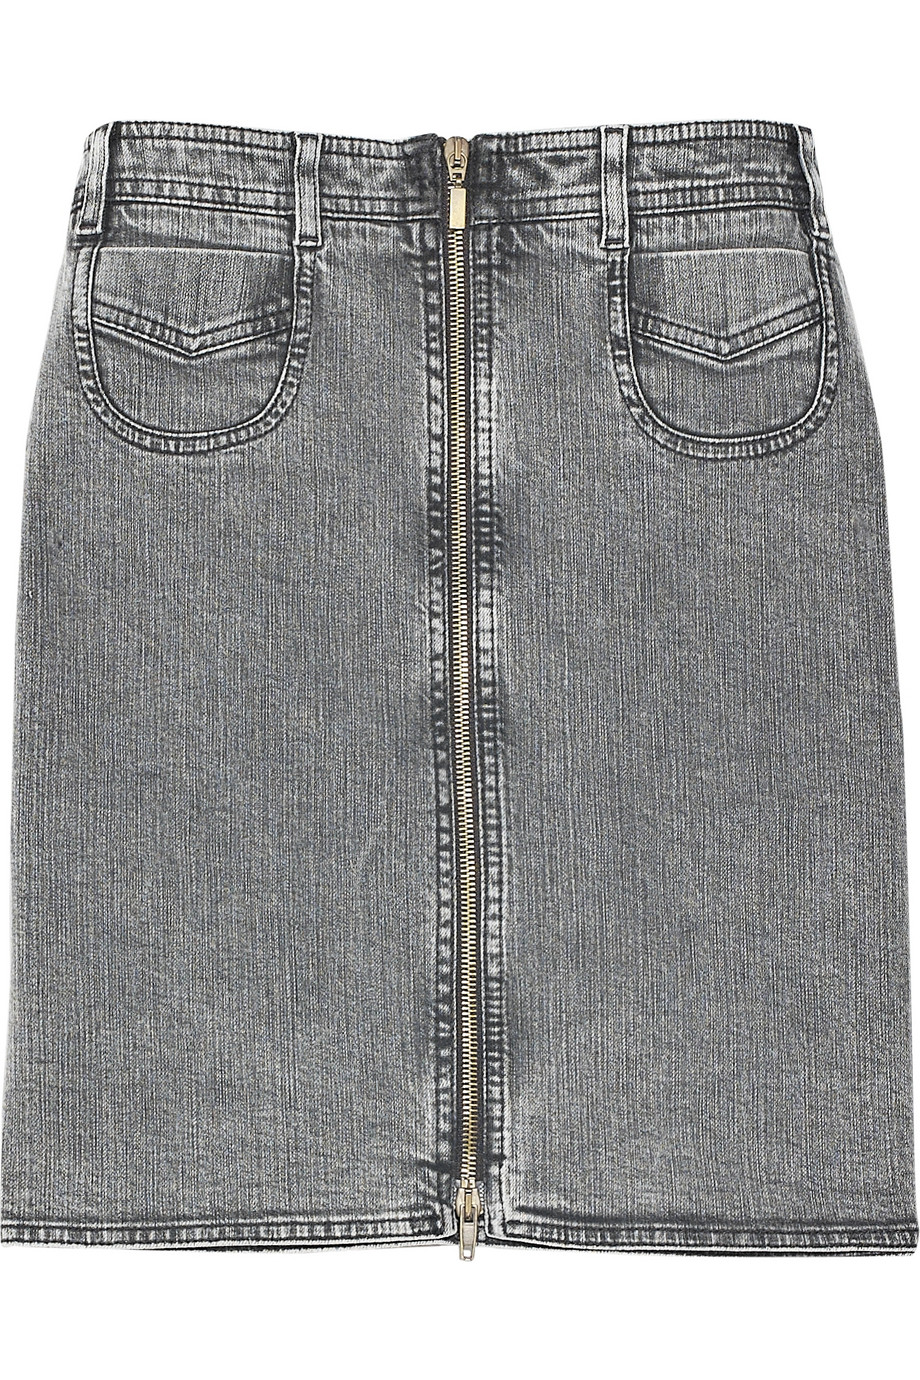 Discount See by Chloé Zipped denim skirt|THE OUTNET